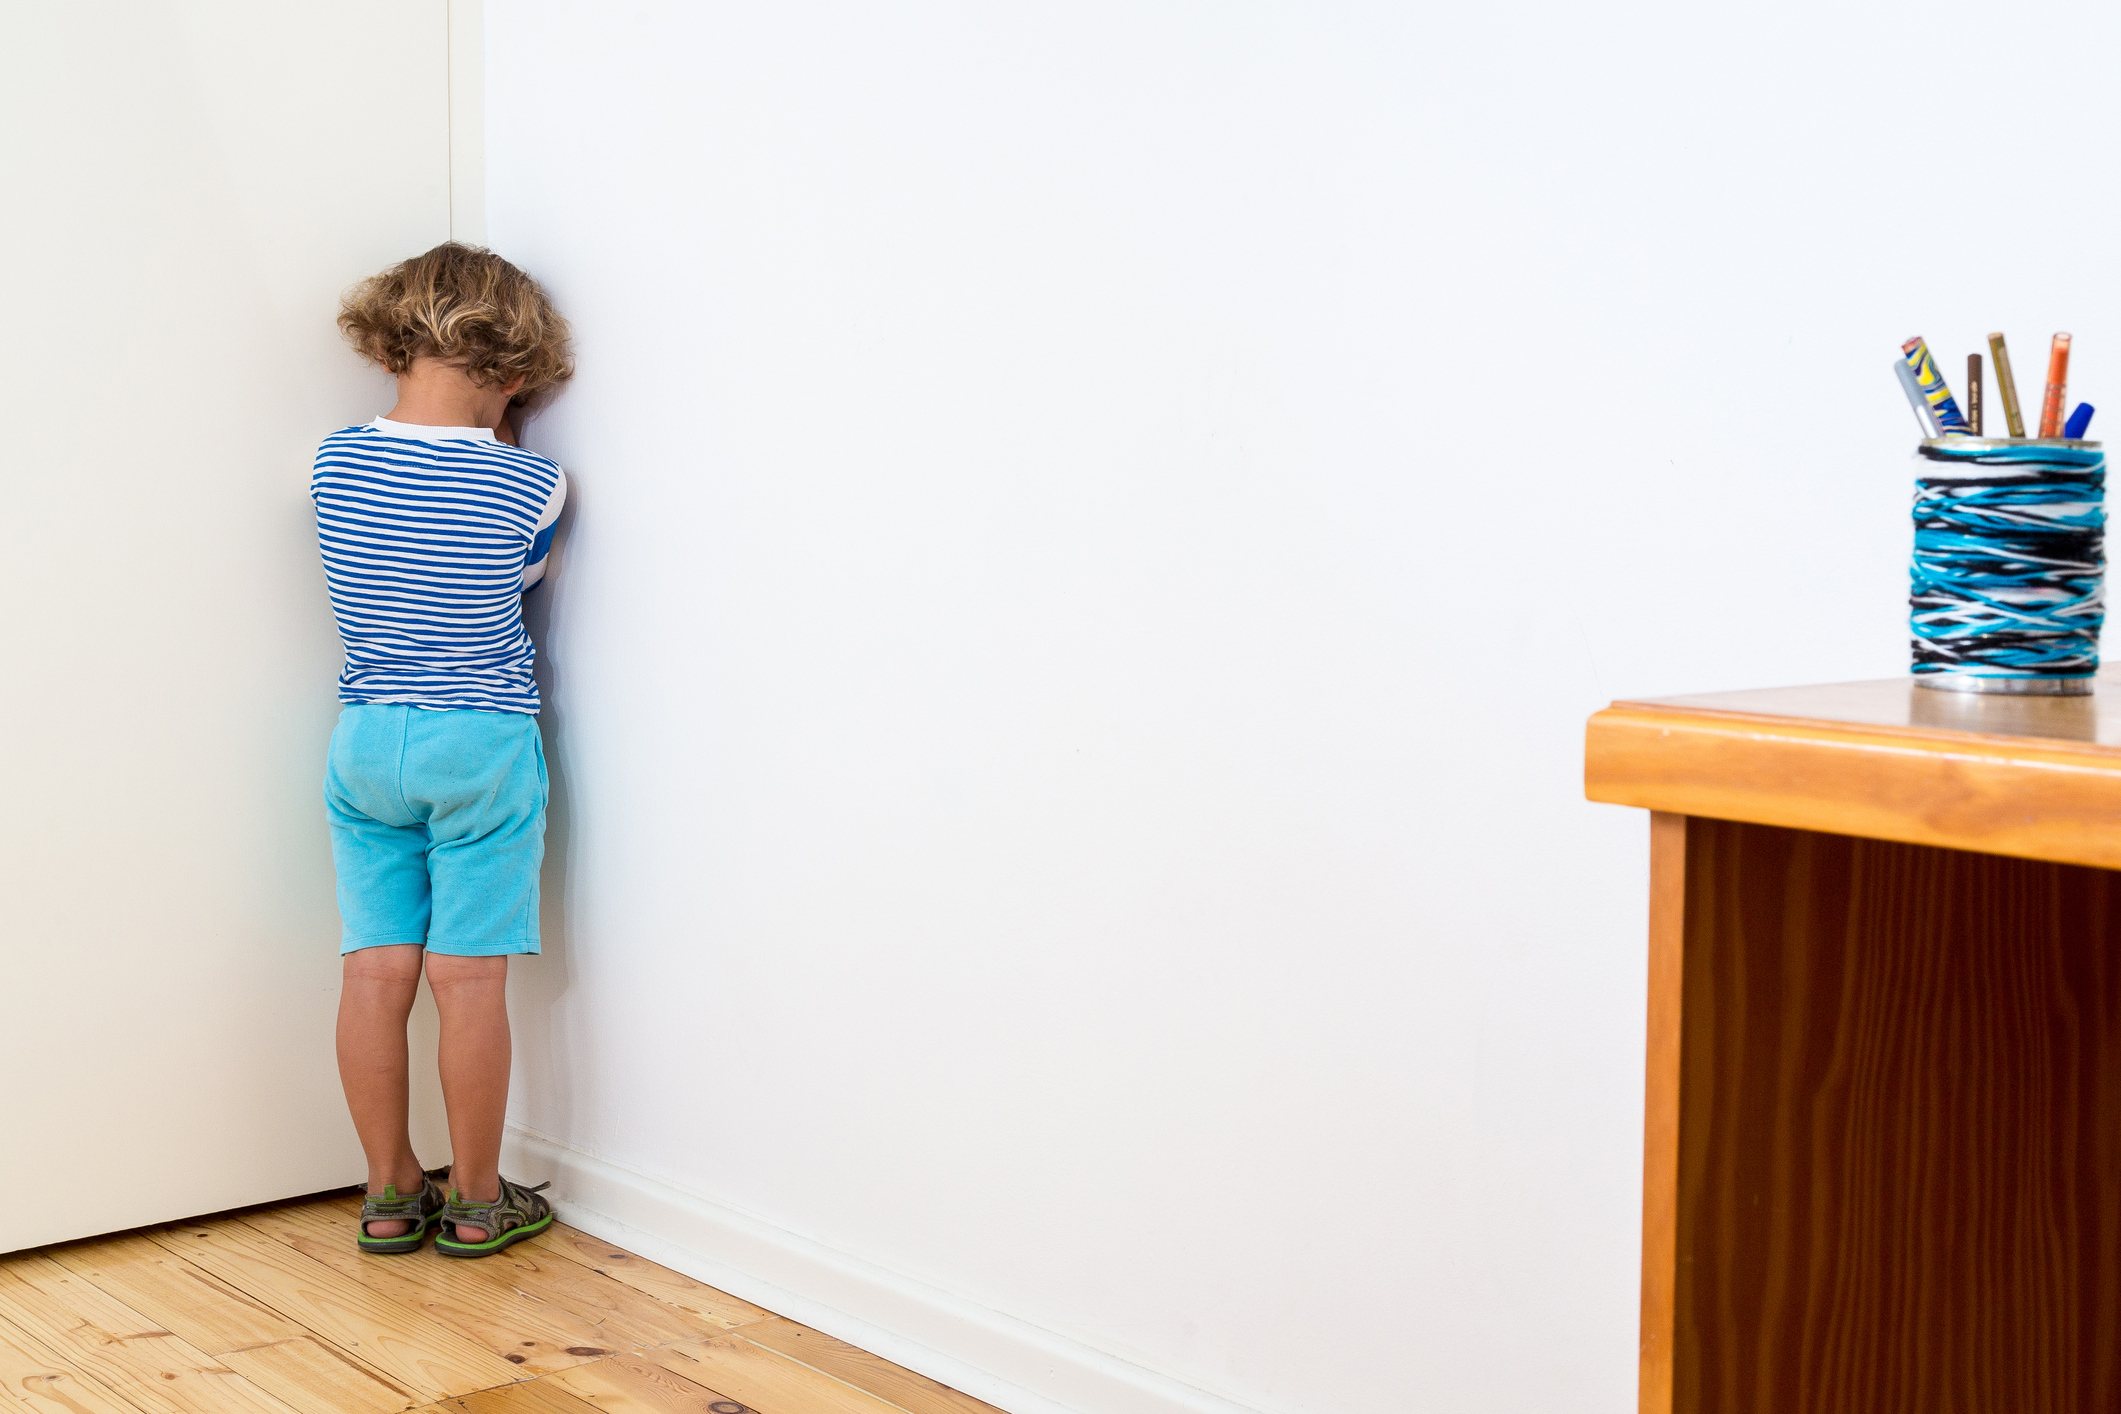 Child in naughty corner, being bullied, having time out or having a tantrum.